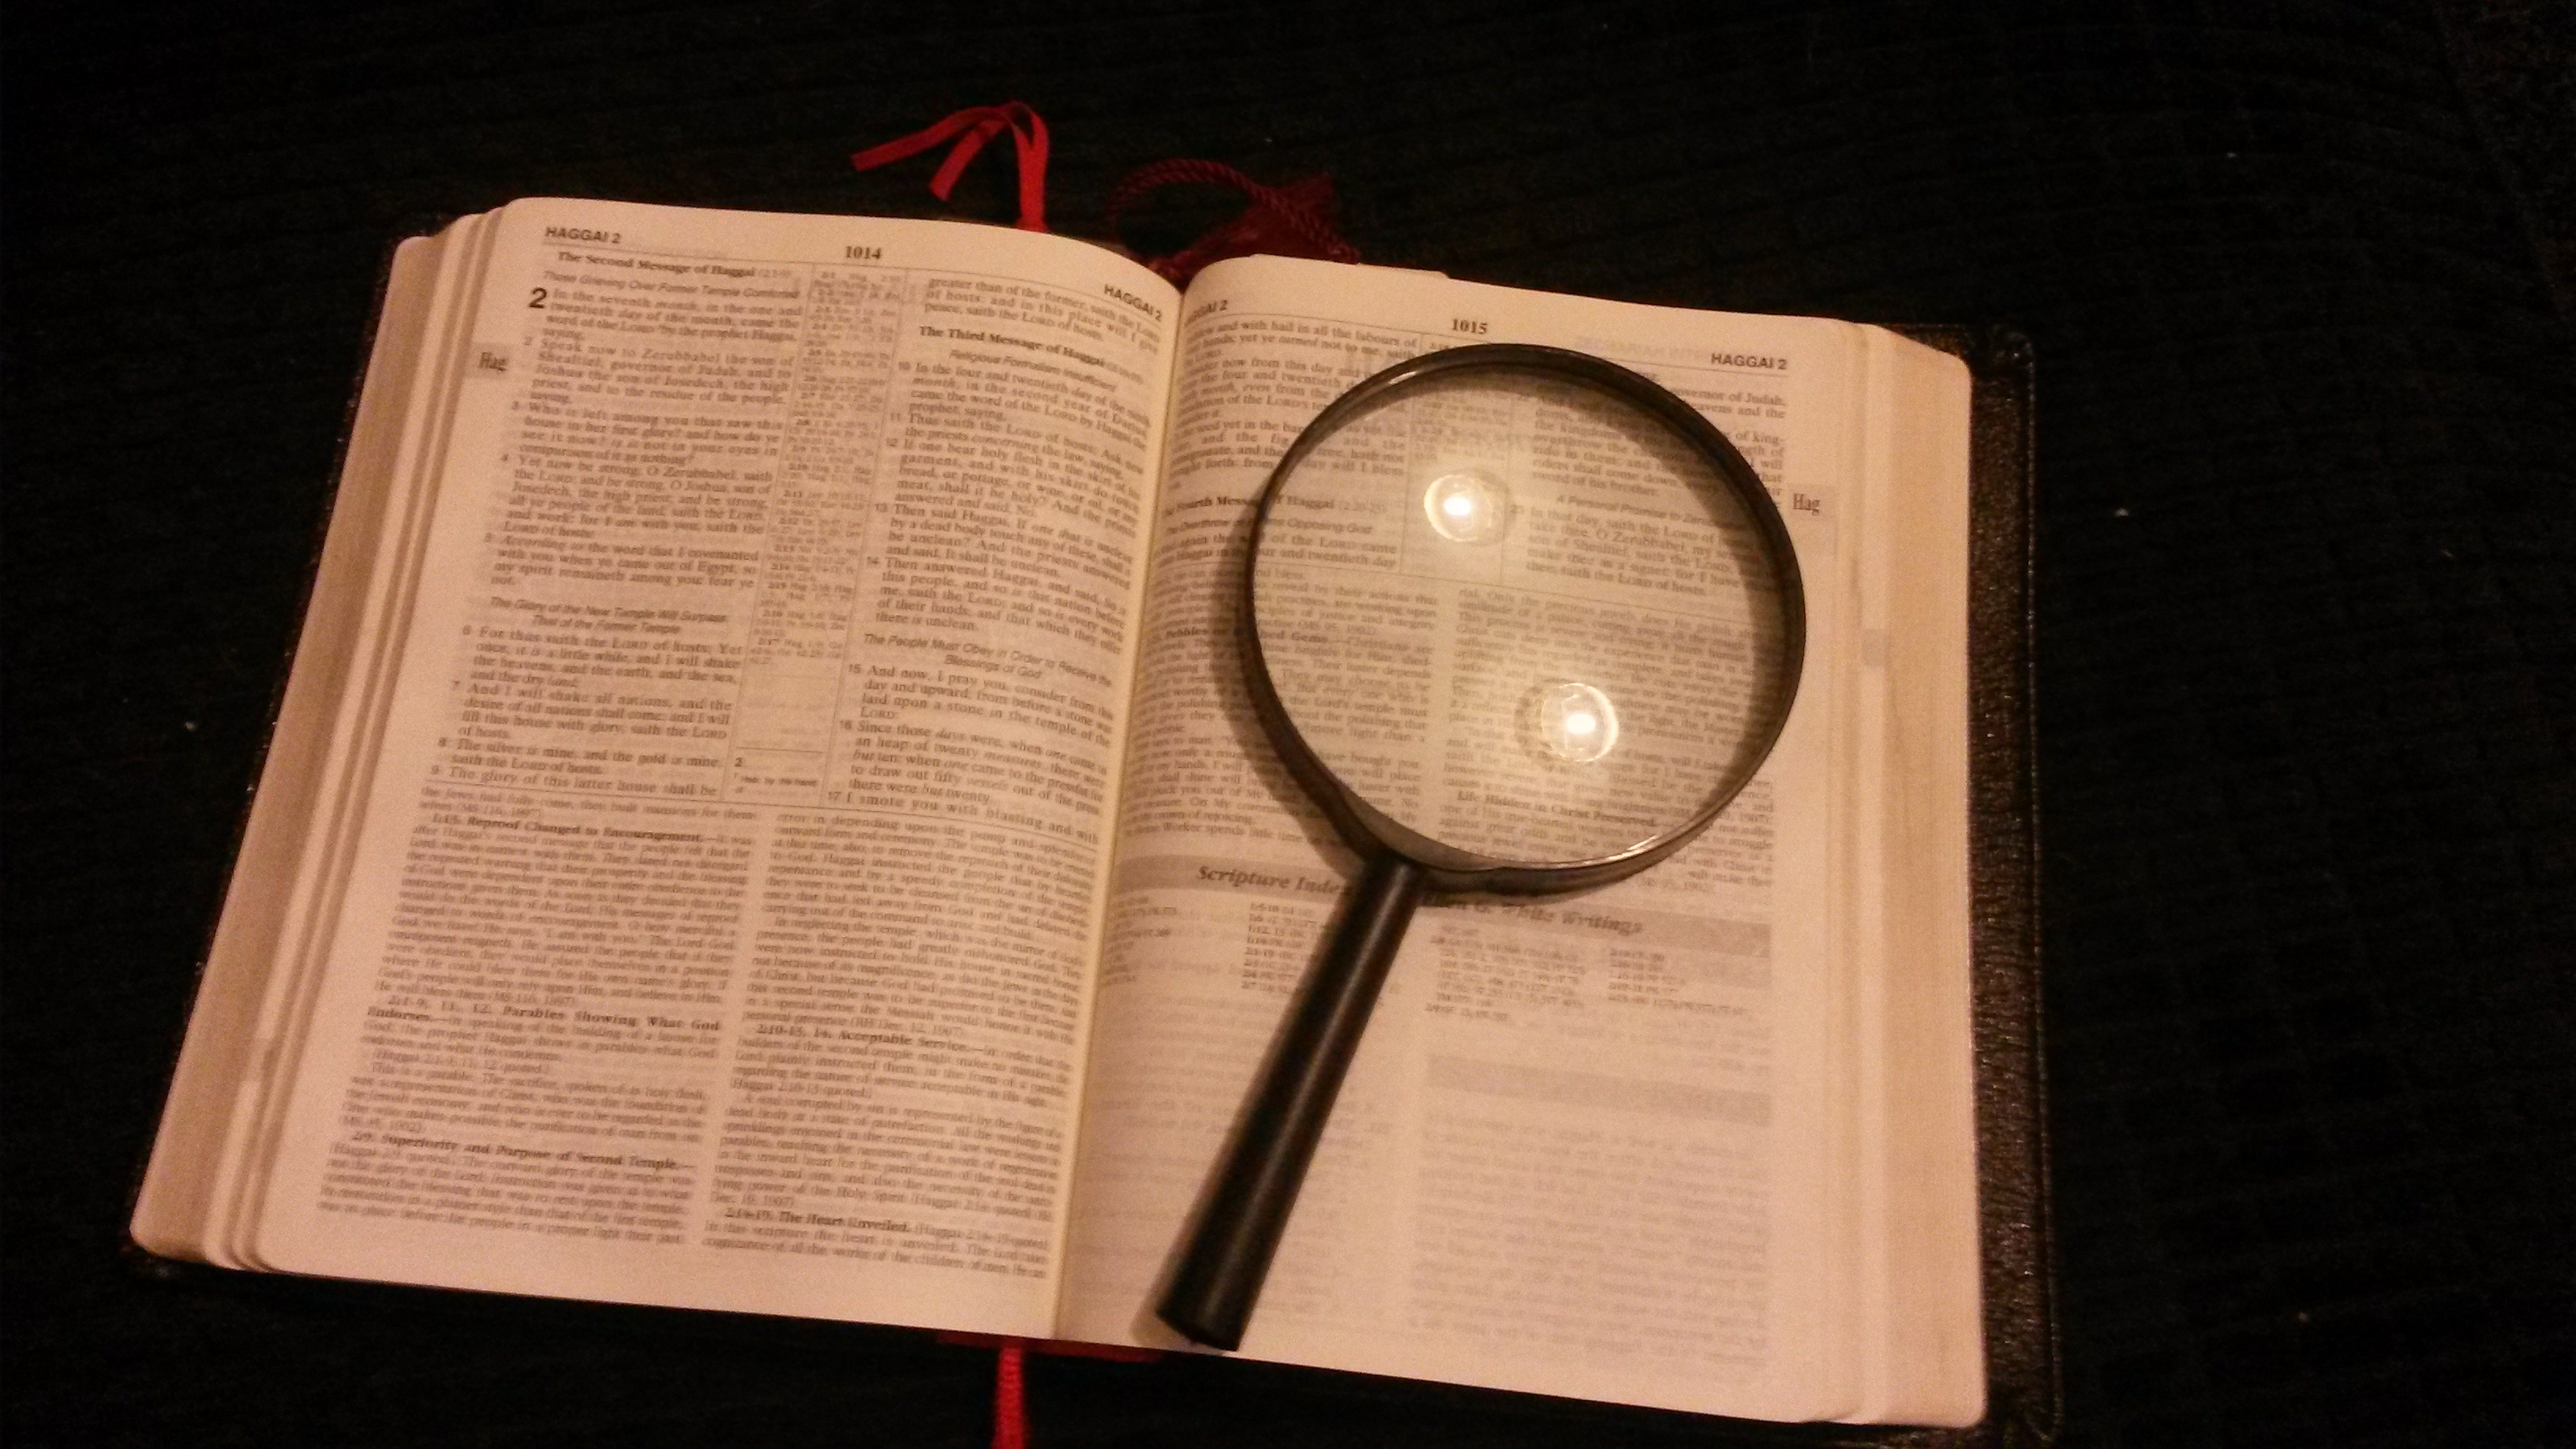 Opened bible and magnifying glass free image.